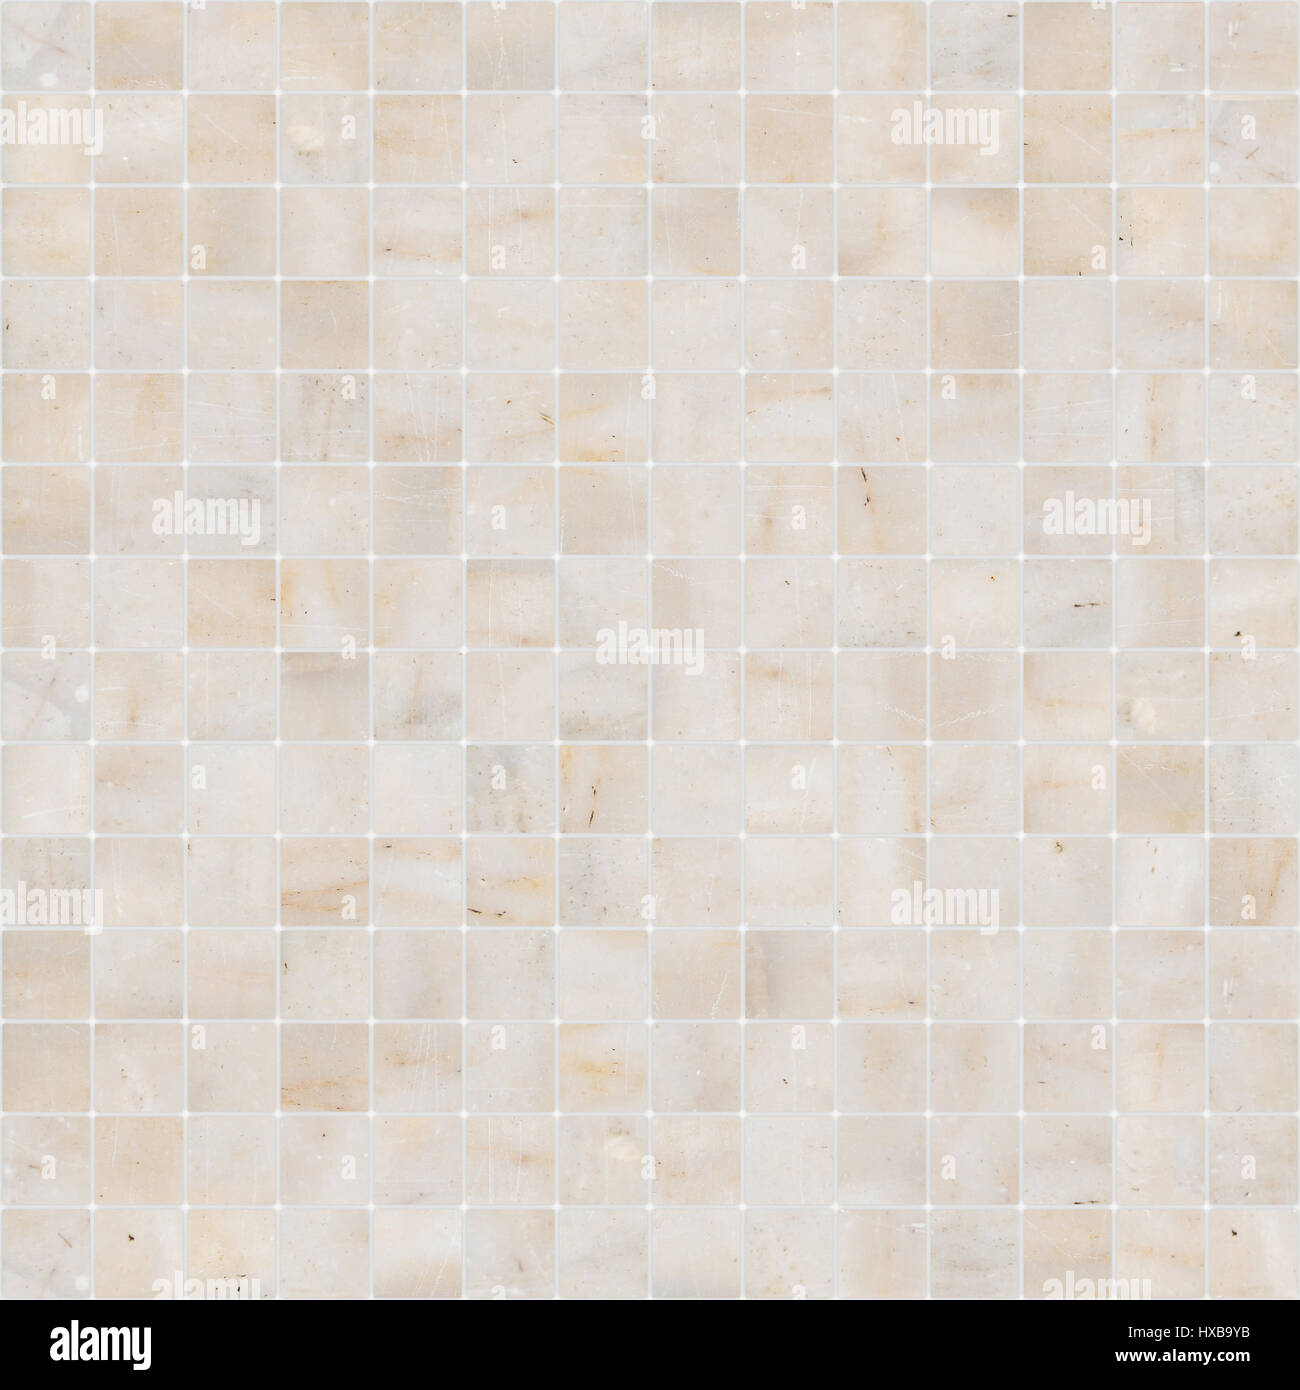 Yellow White Mosaic Marble Tile Texture Seamless Stock Photo Alamy